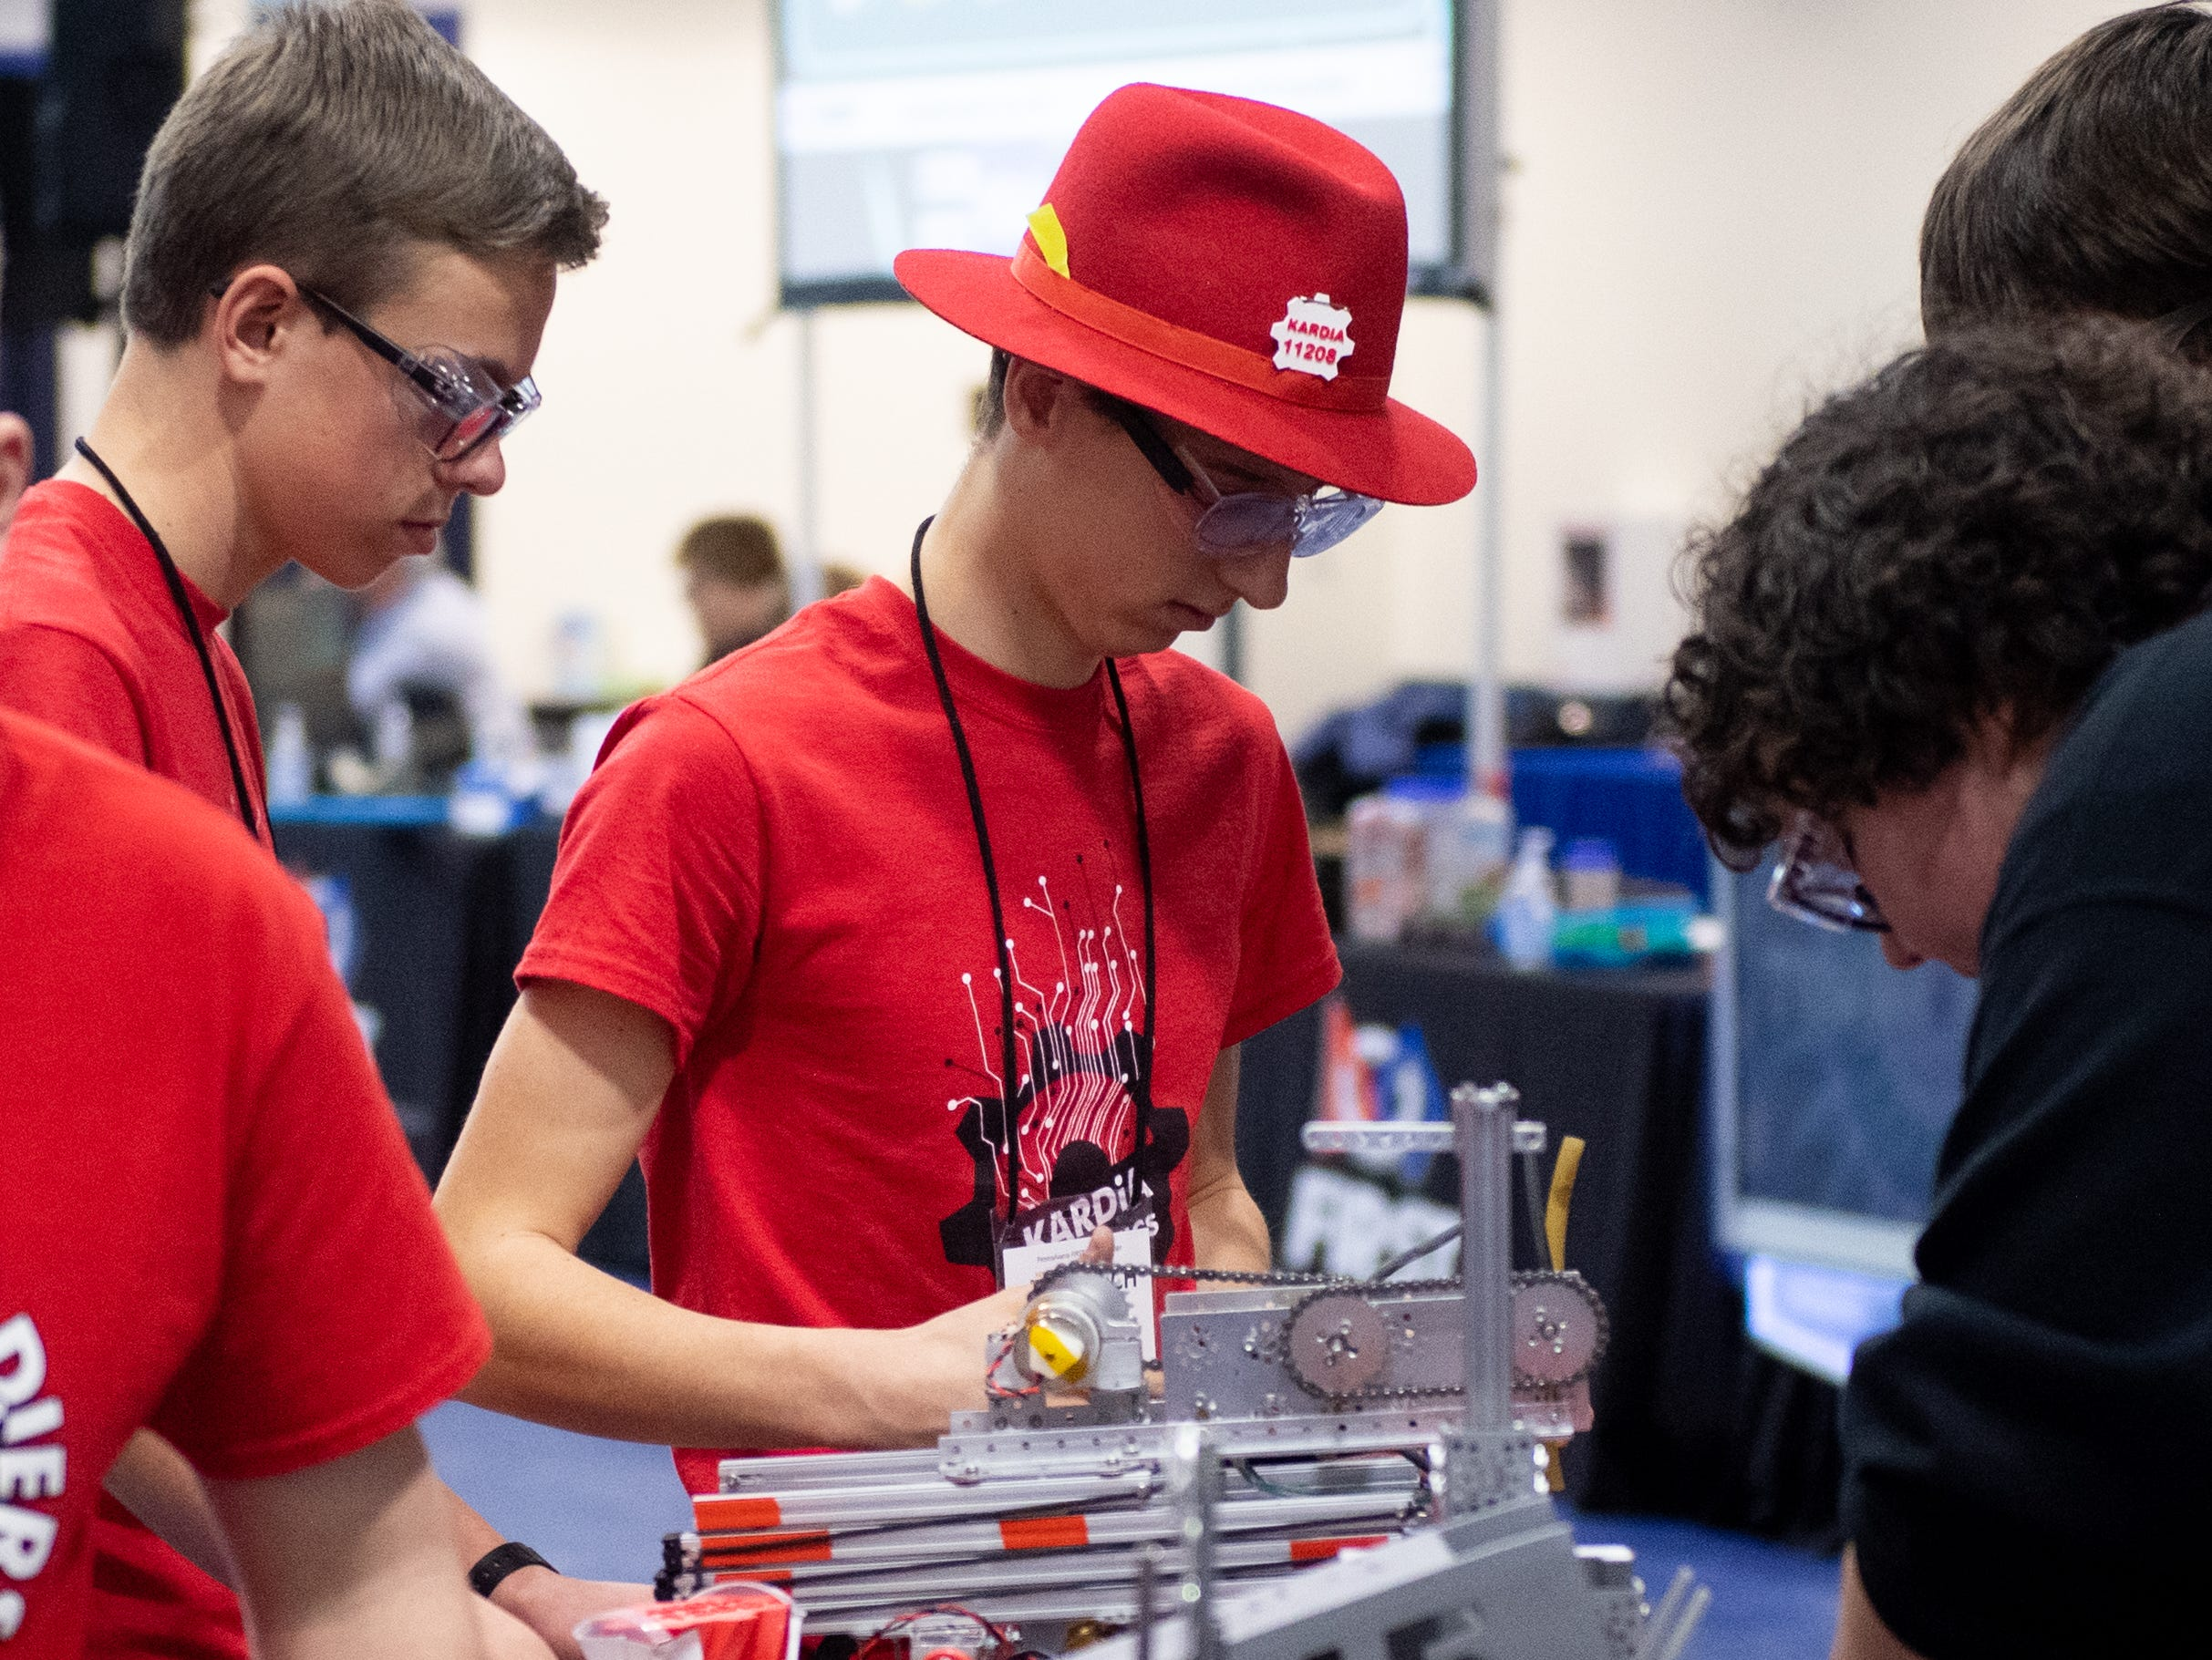 Before robots are allowed in the ring, they must be inspected and cleared by officials at the First Tech Challenge robotics competition, February 2, 2019.